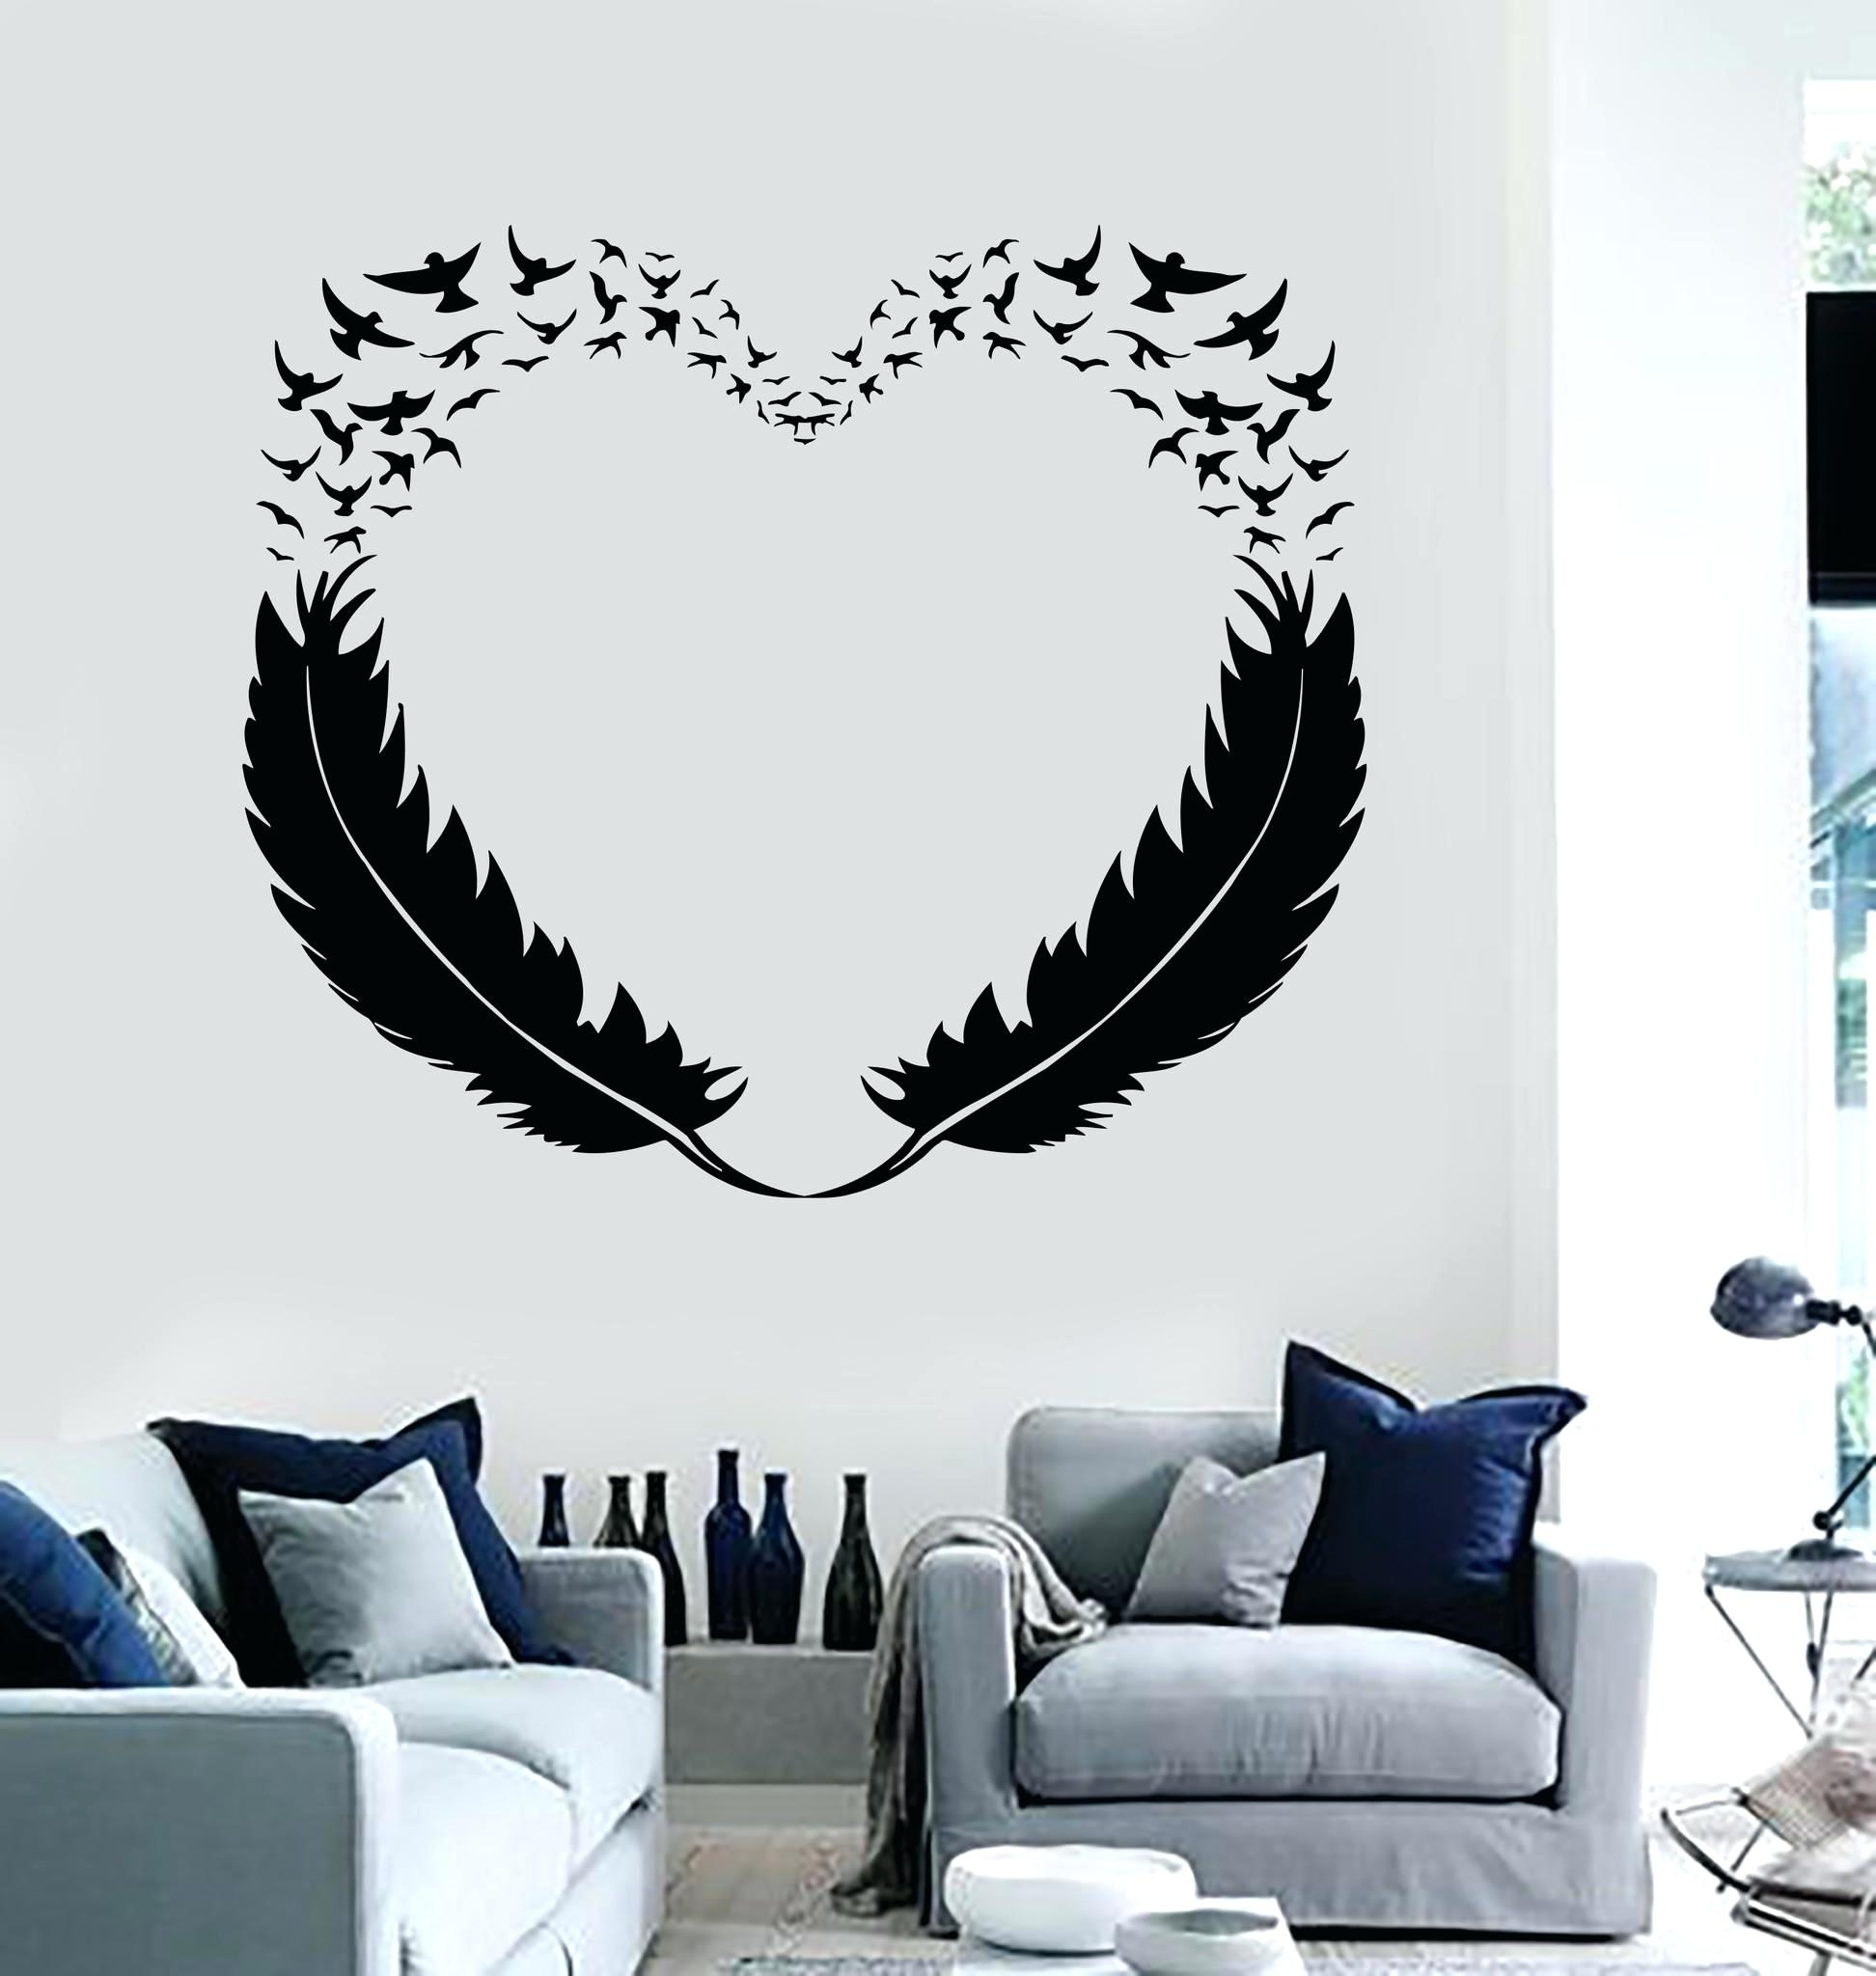 Most Current Apartment Wall Decals Wall Art New Released Cool Wall Art For Guys With Cool Wall Art For Guys (View 7 of 15)